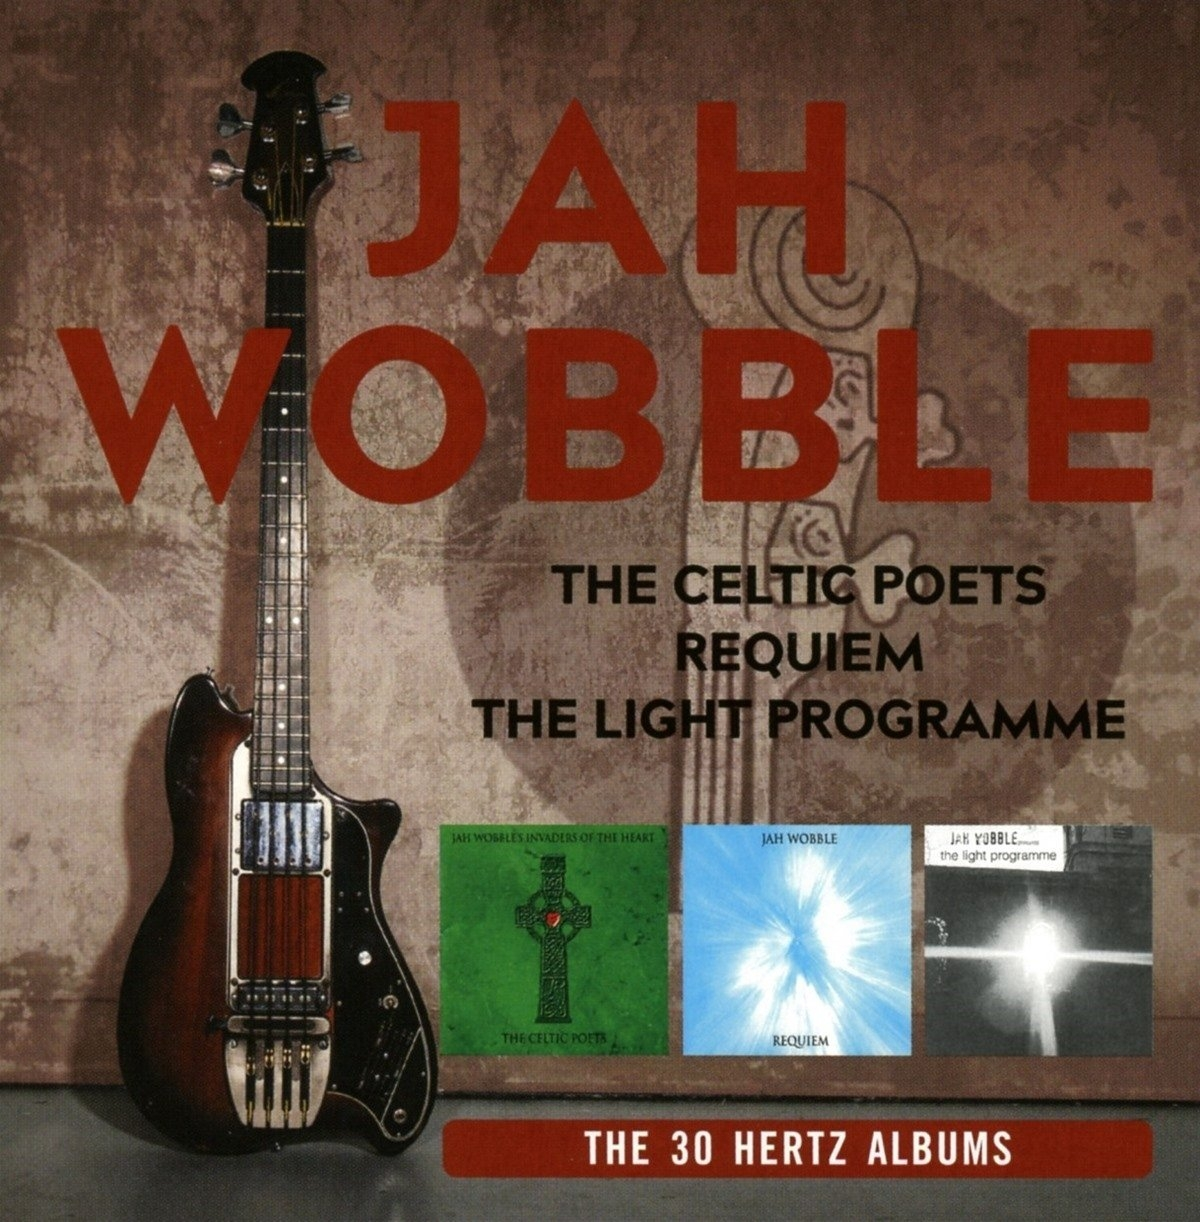 catalog 02 18 wobble 30 hertz